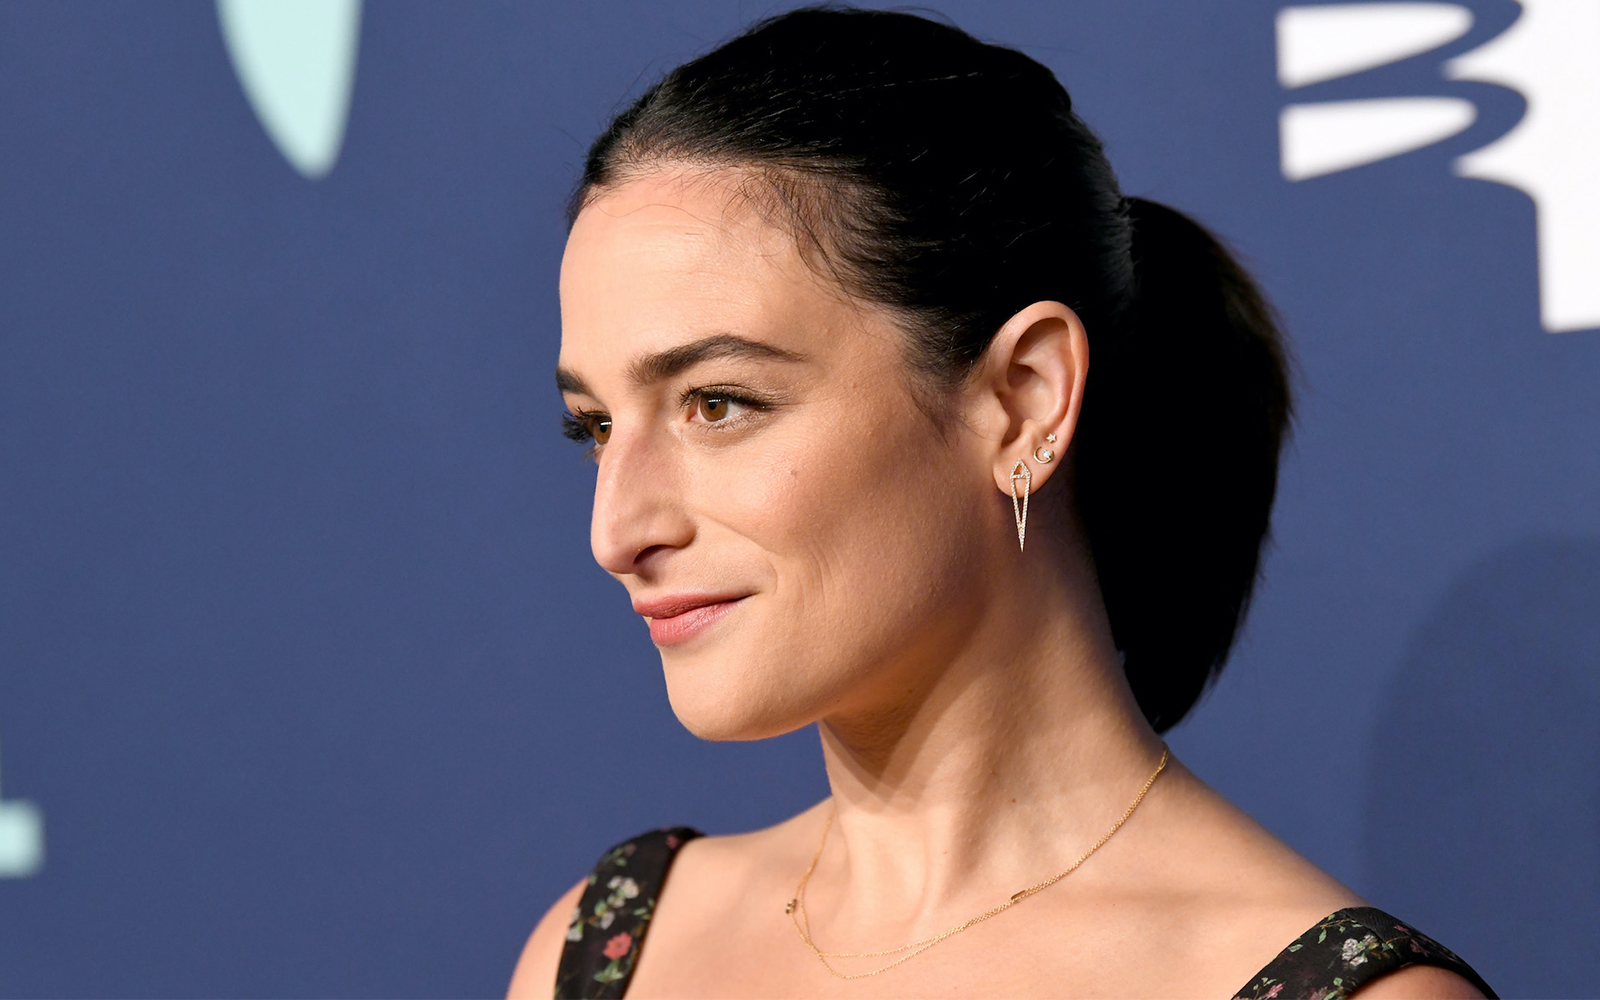 Jenny Slate Exits 'Big Mouth', Will No Longer Voice Black Character